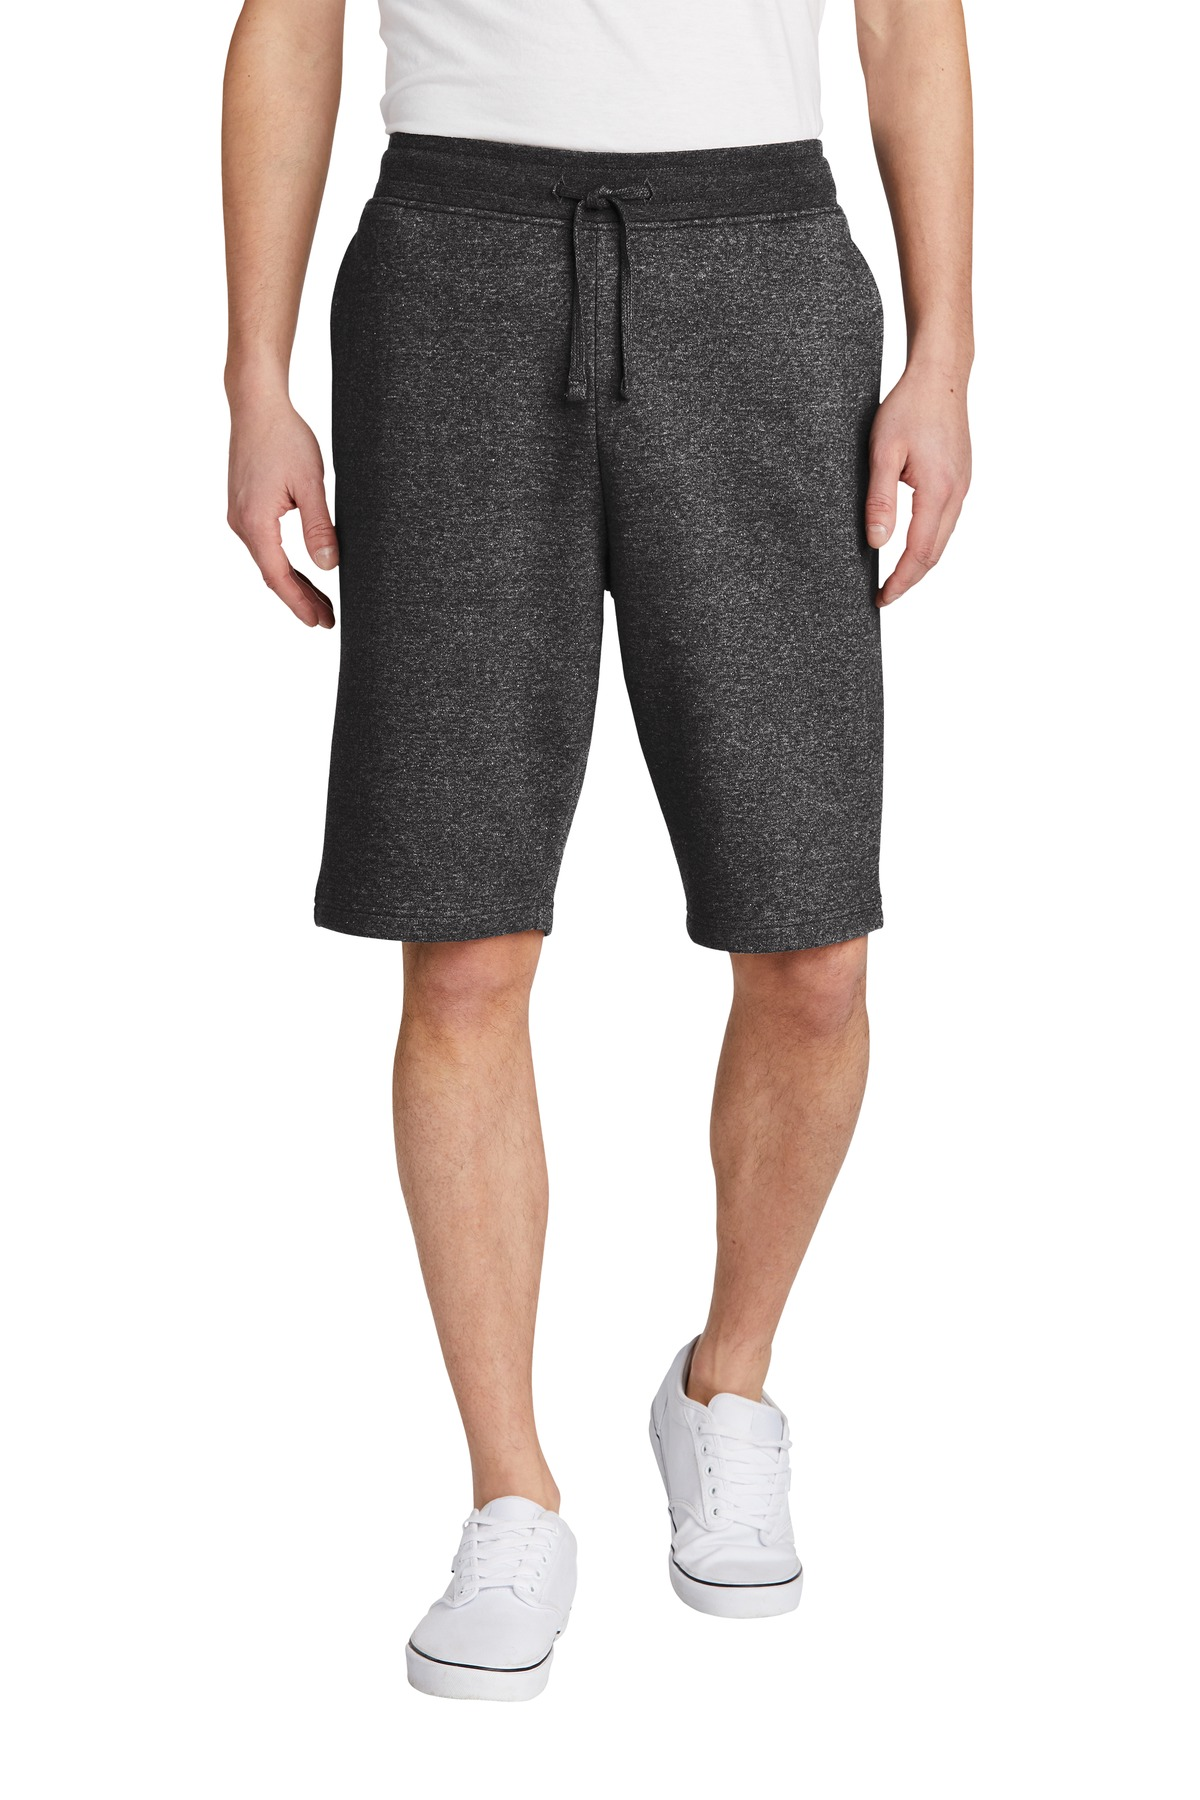 District ®  V.I.T. ™ Fleece Short DT6108 - Heathered Charcoal